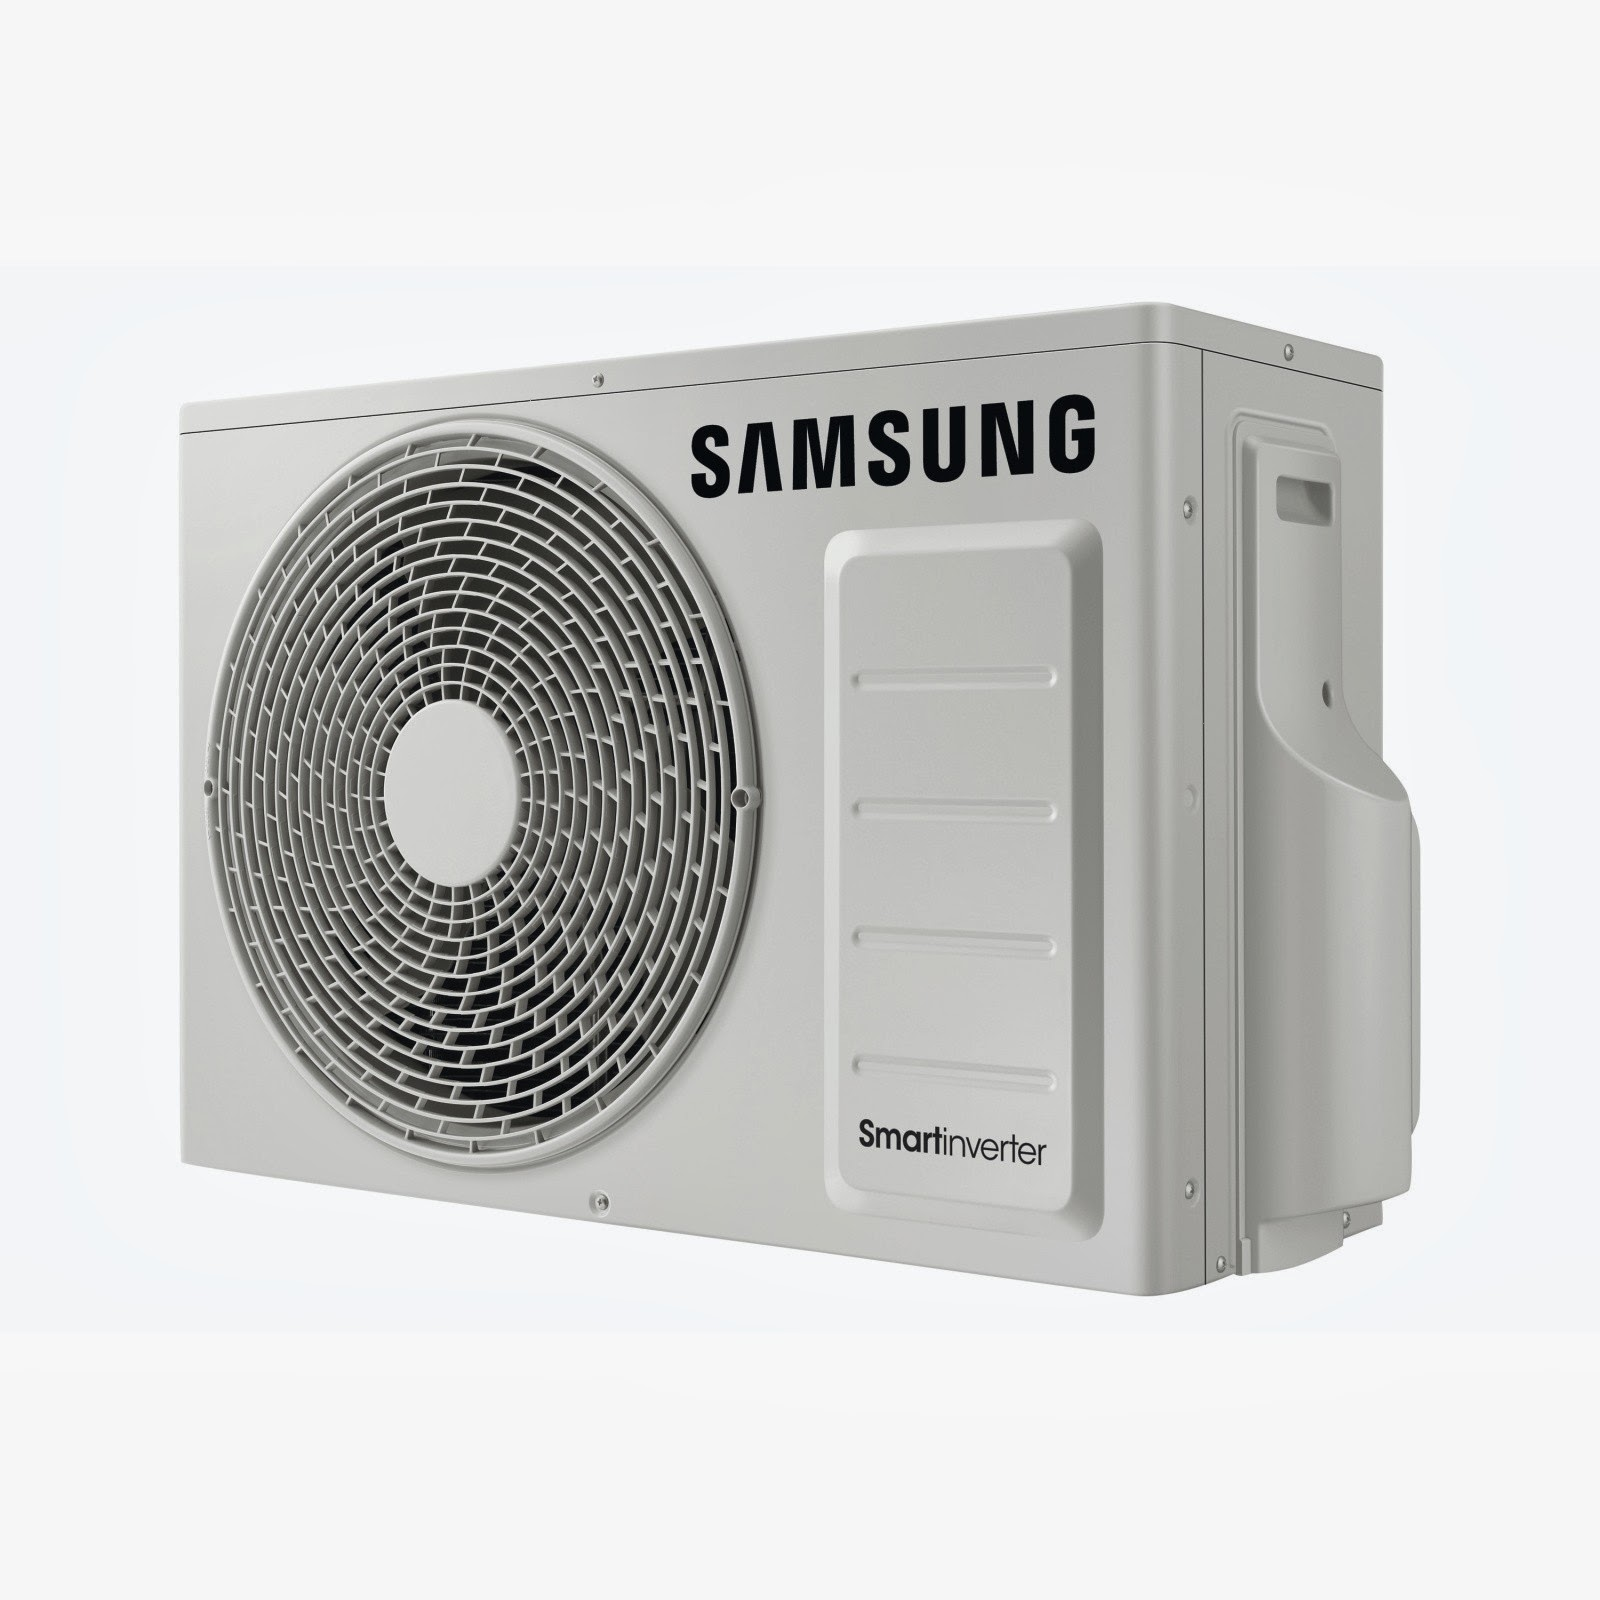 Samsung Air Conditioning Q9000 Floor Console Inverter